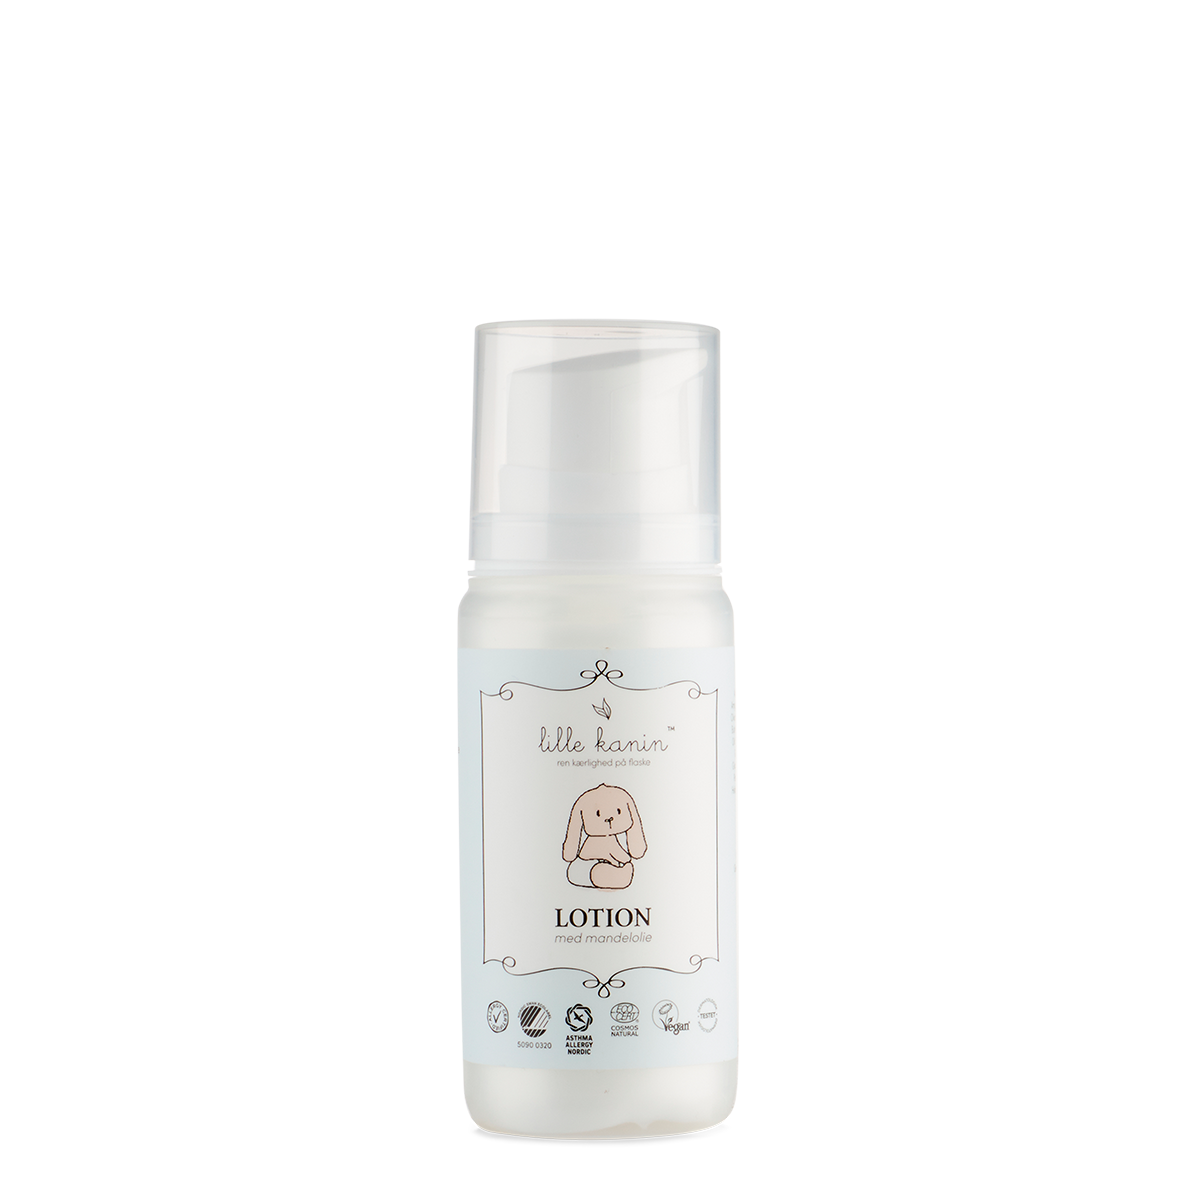 Image of Lille Kanin - Lotion (43597965)